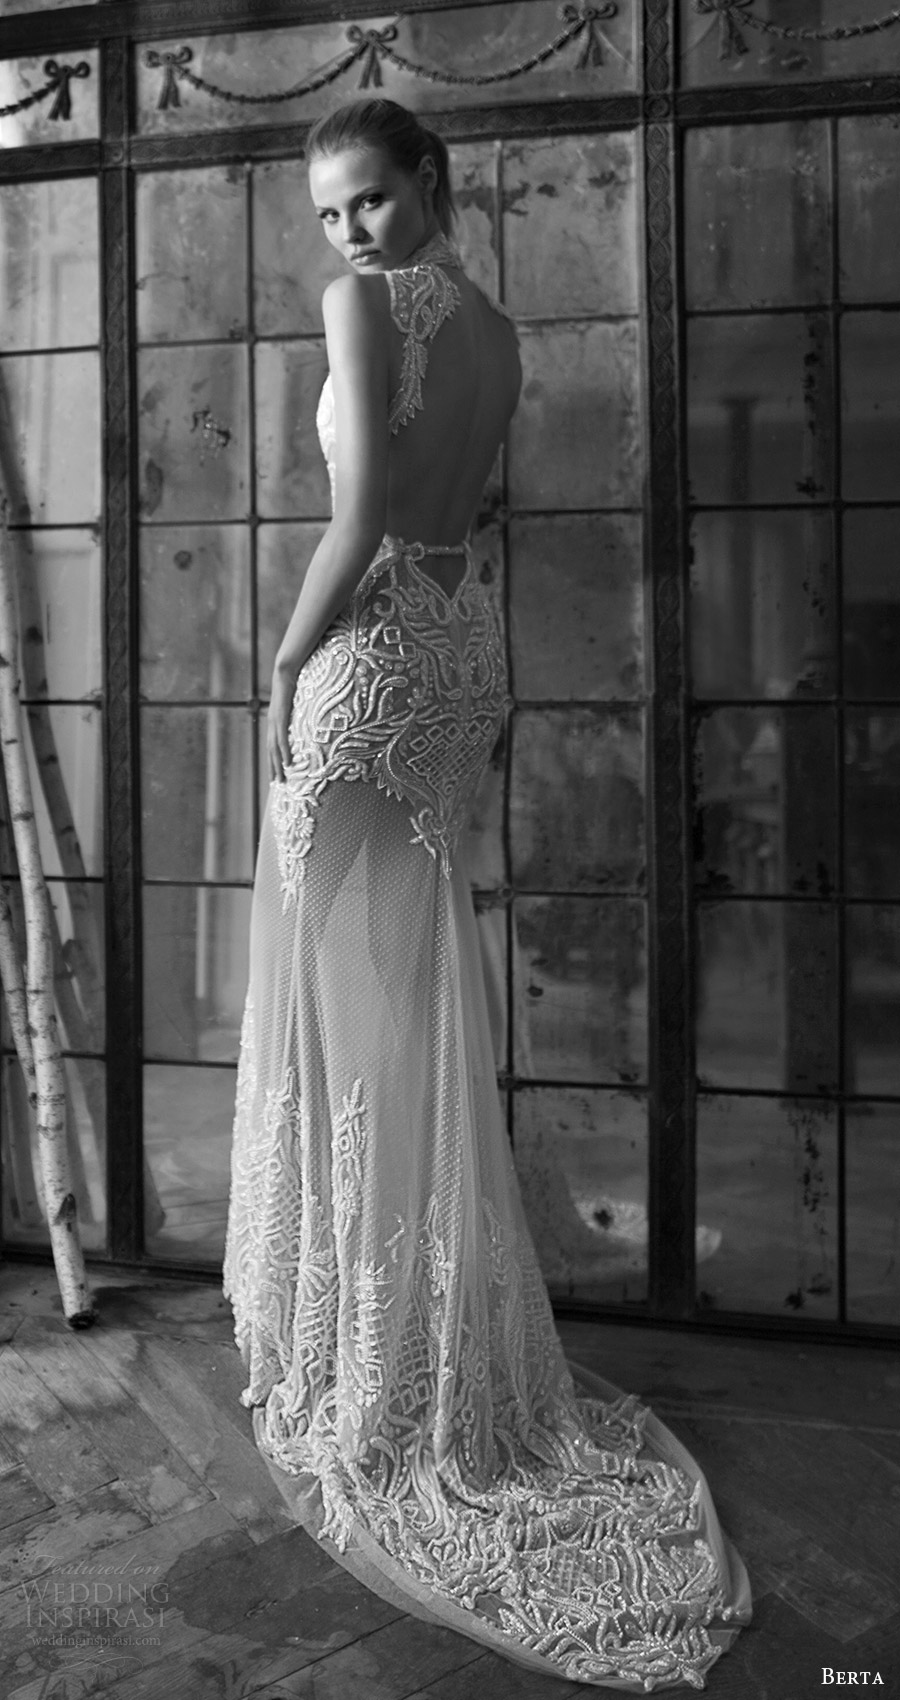 berta bridal fall 2016 sleeveless high neck trumpet wedding dress (16 116) bv keyhole back train